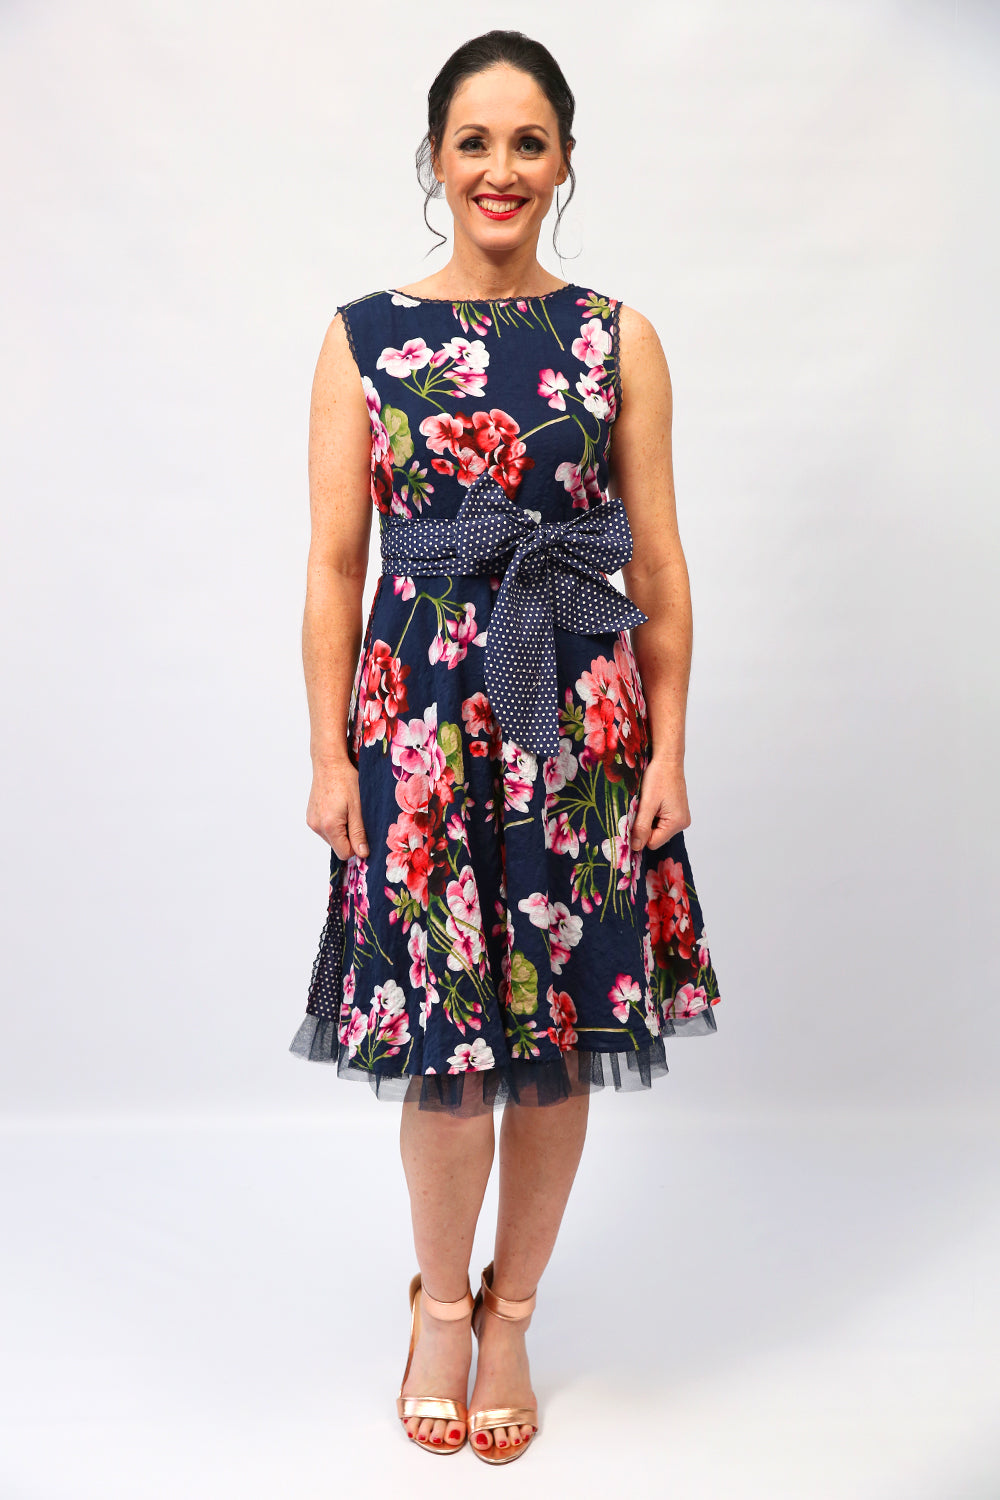 Kellie FlipIt | Addicted to Life | Summer Collection | Fashion Design | Annah Stretton / Floral Summer Dresses NZ / Floral Dresses NZ / Designer NZ /